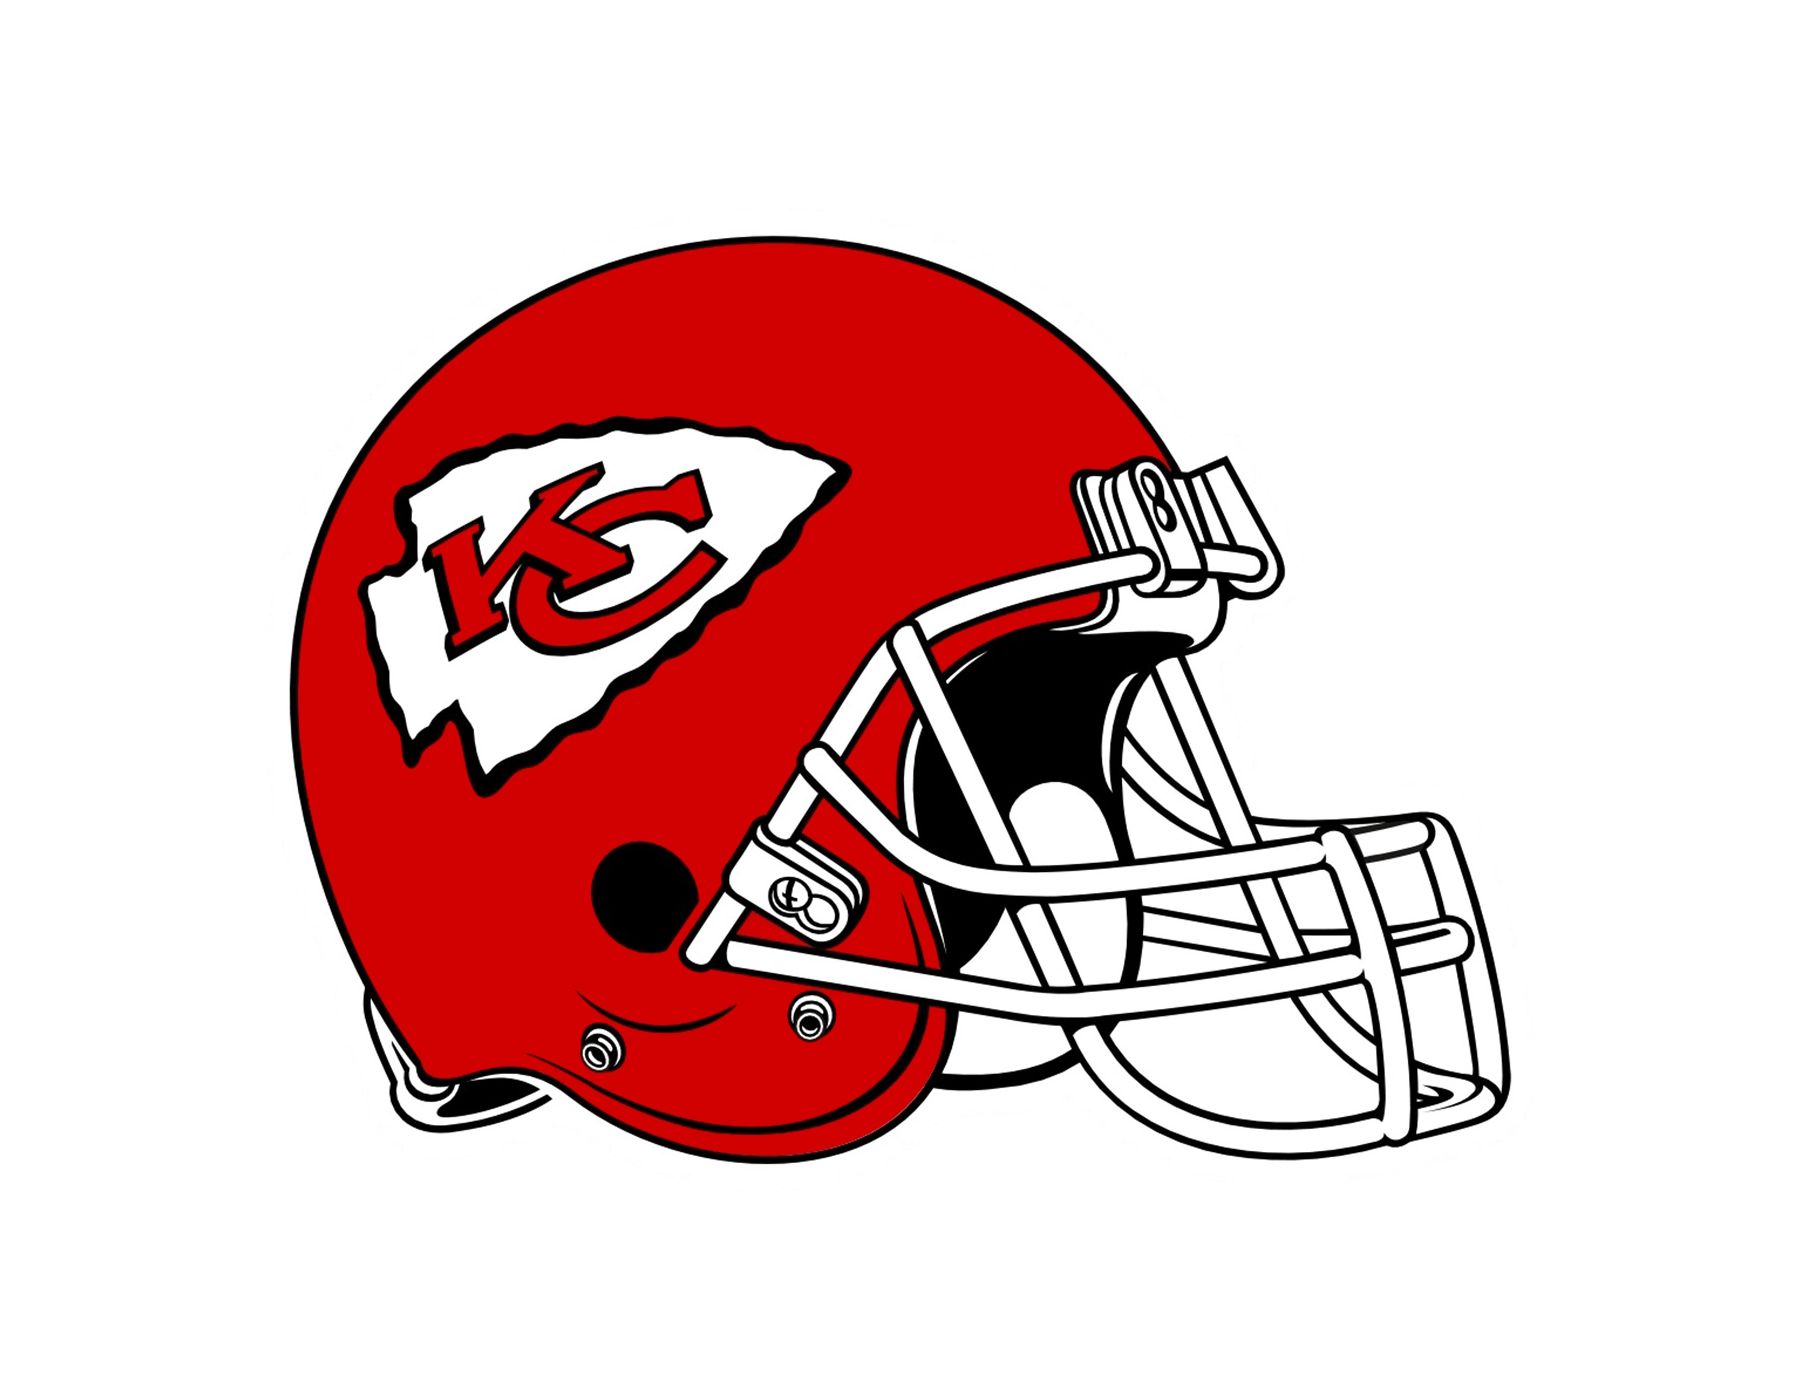 Kansas City Chiefs helmet logo - Kansas City Chiefs PNG